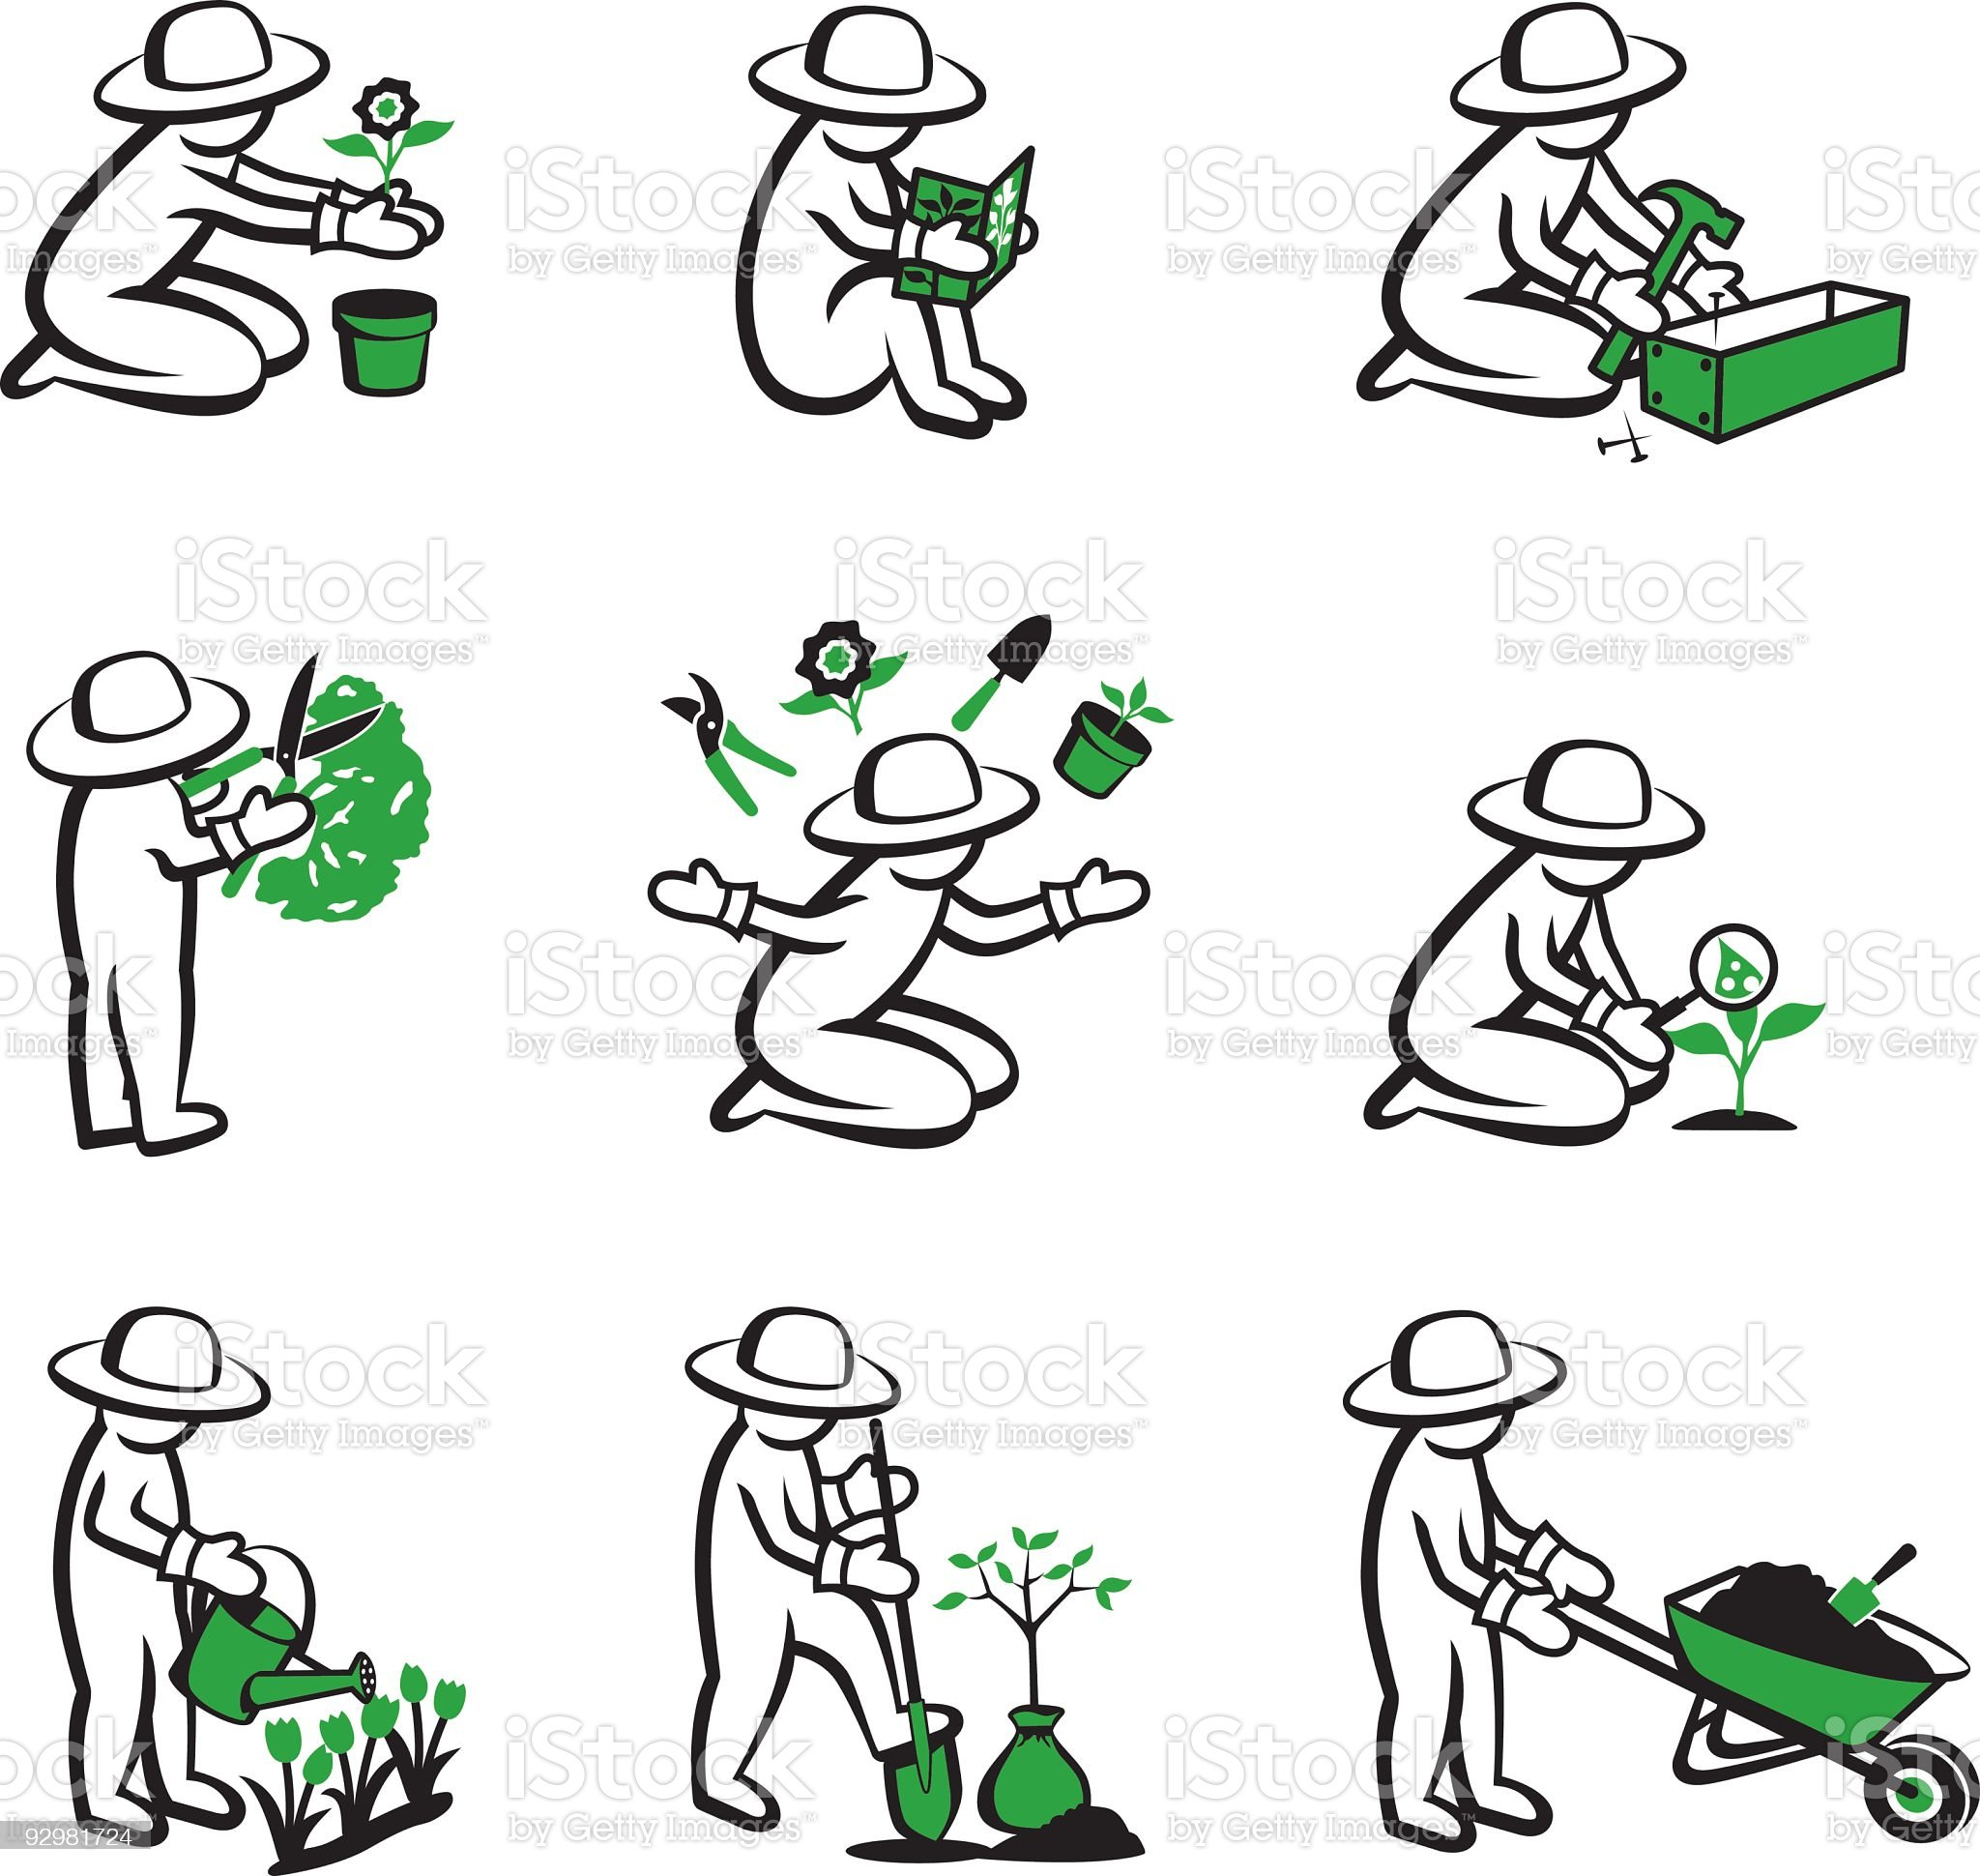 Cartoon icons of person gardening royalty-free stock vector art